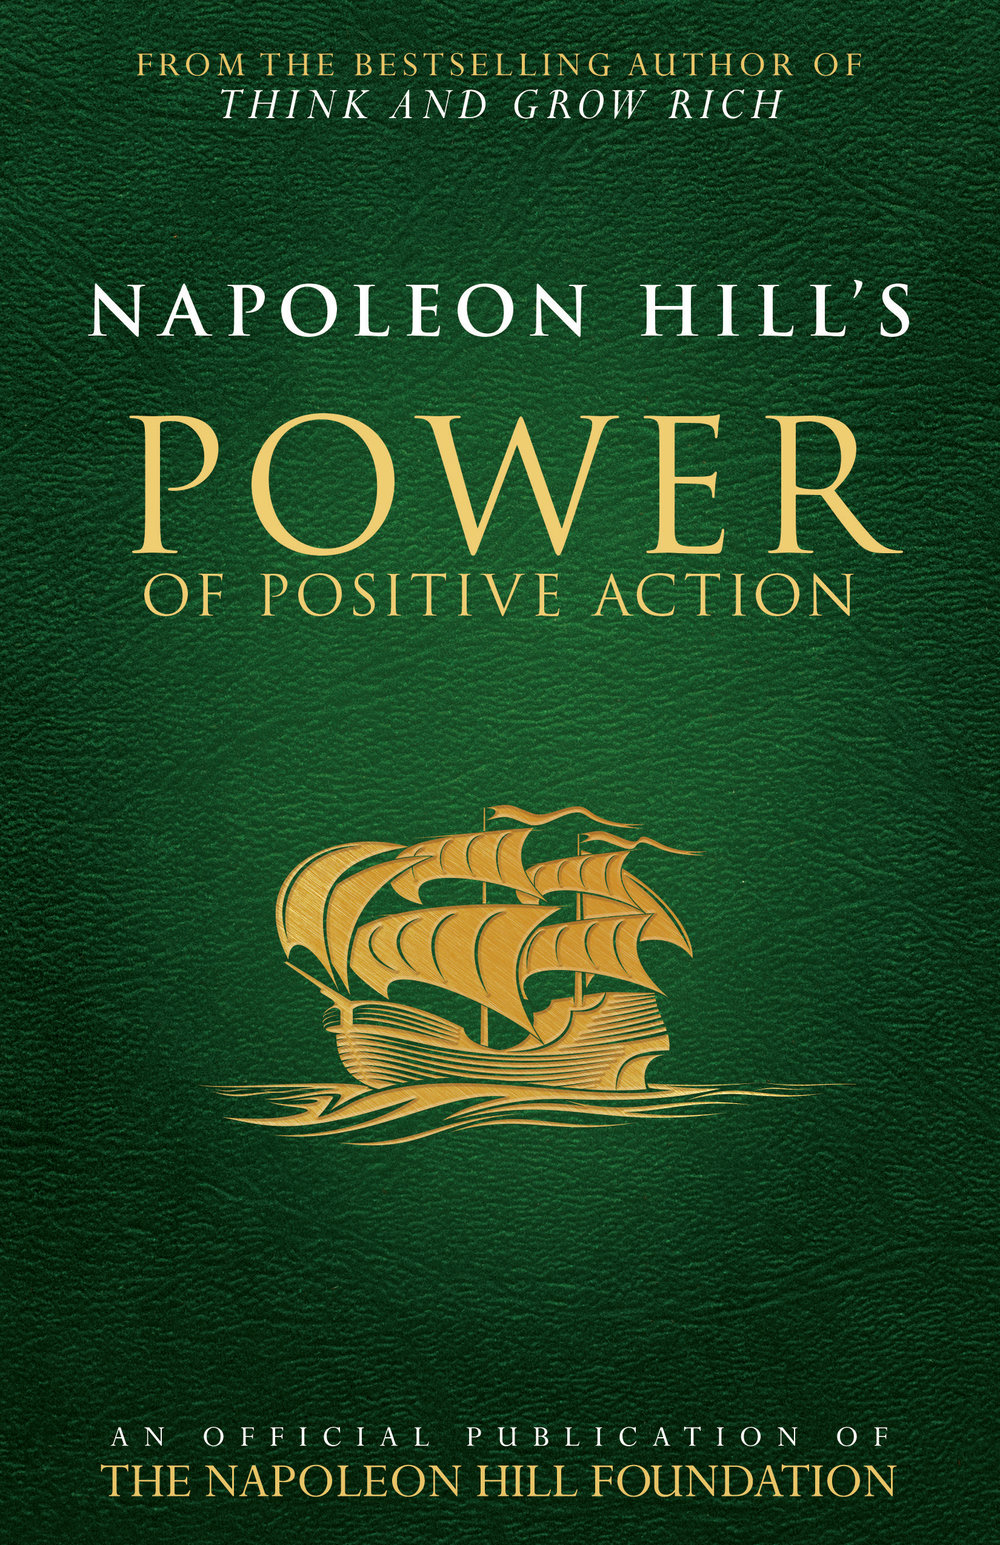 Napoleon Hill's Power of Positive Action - By napoleon hill